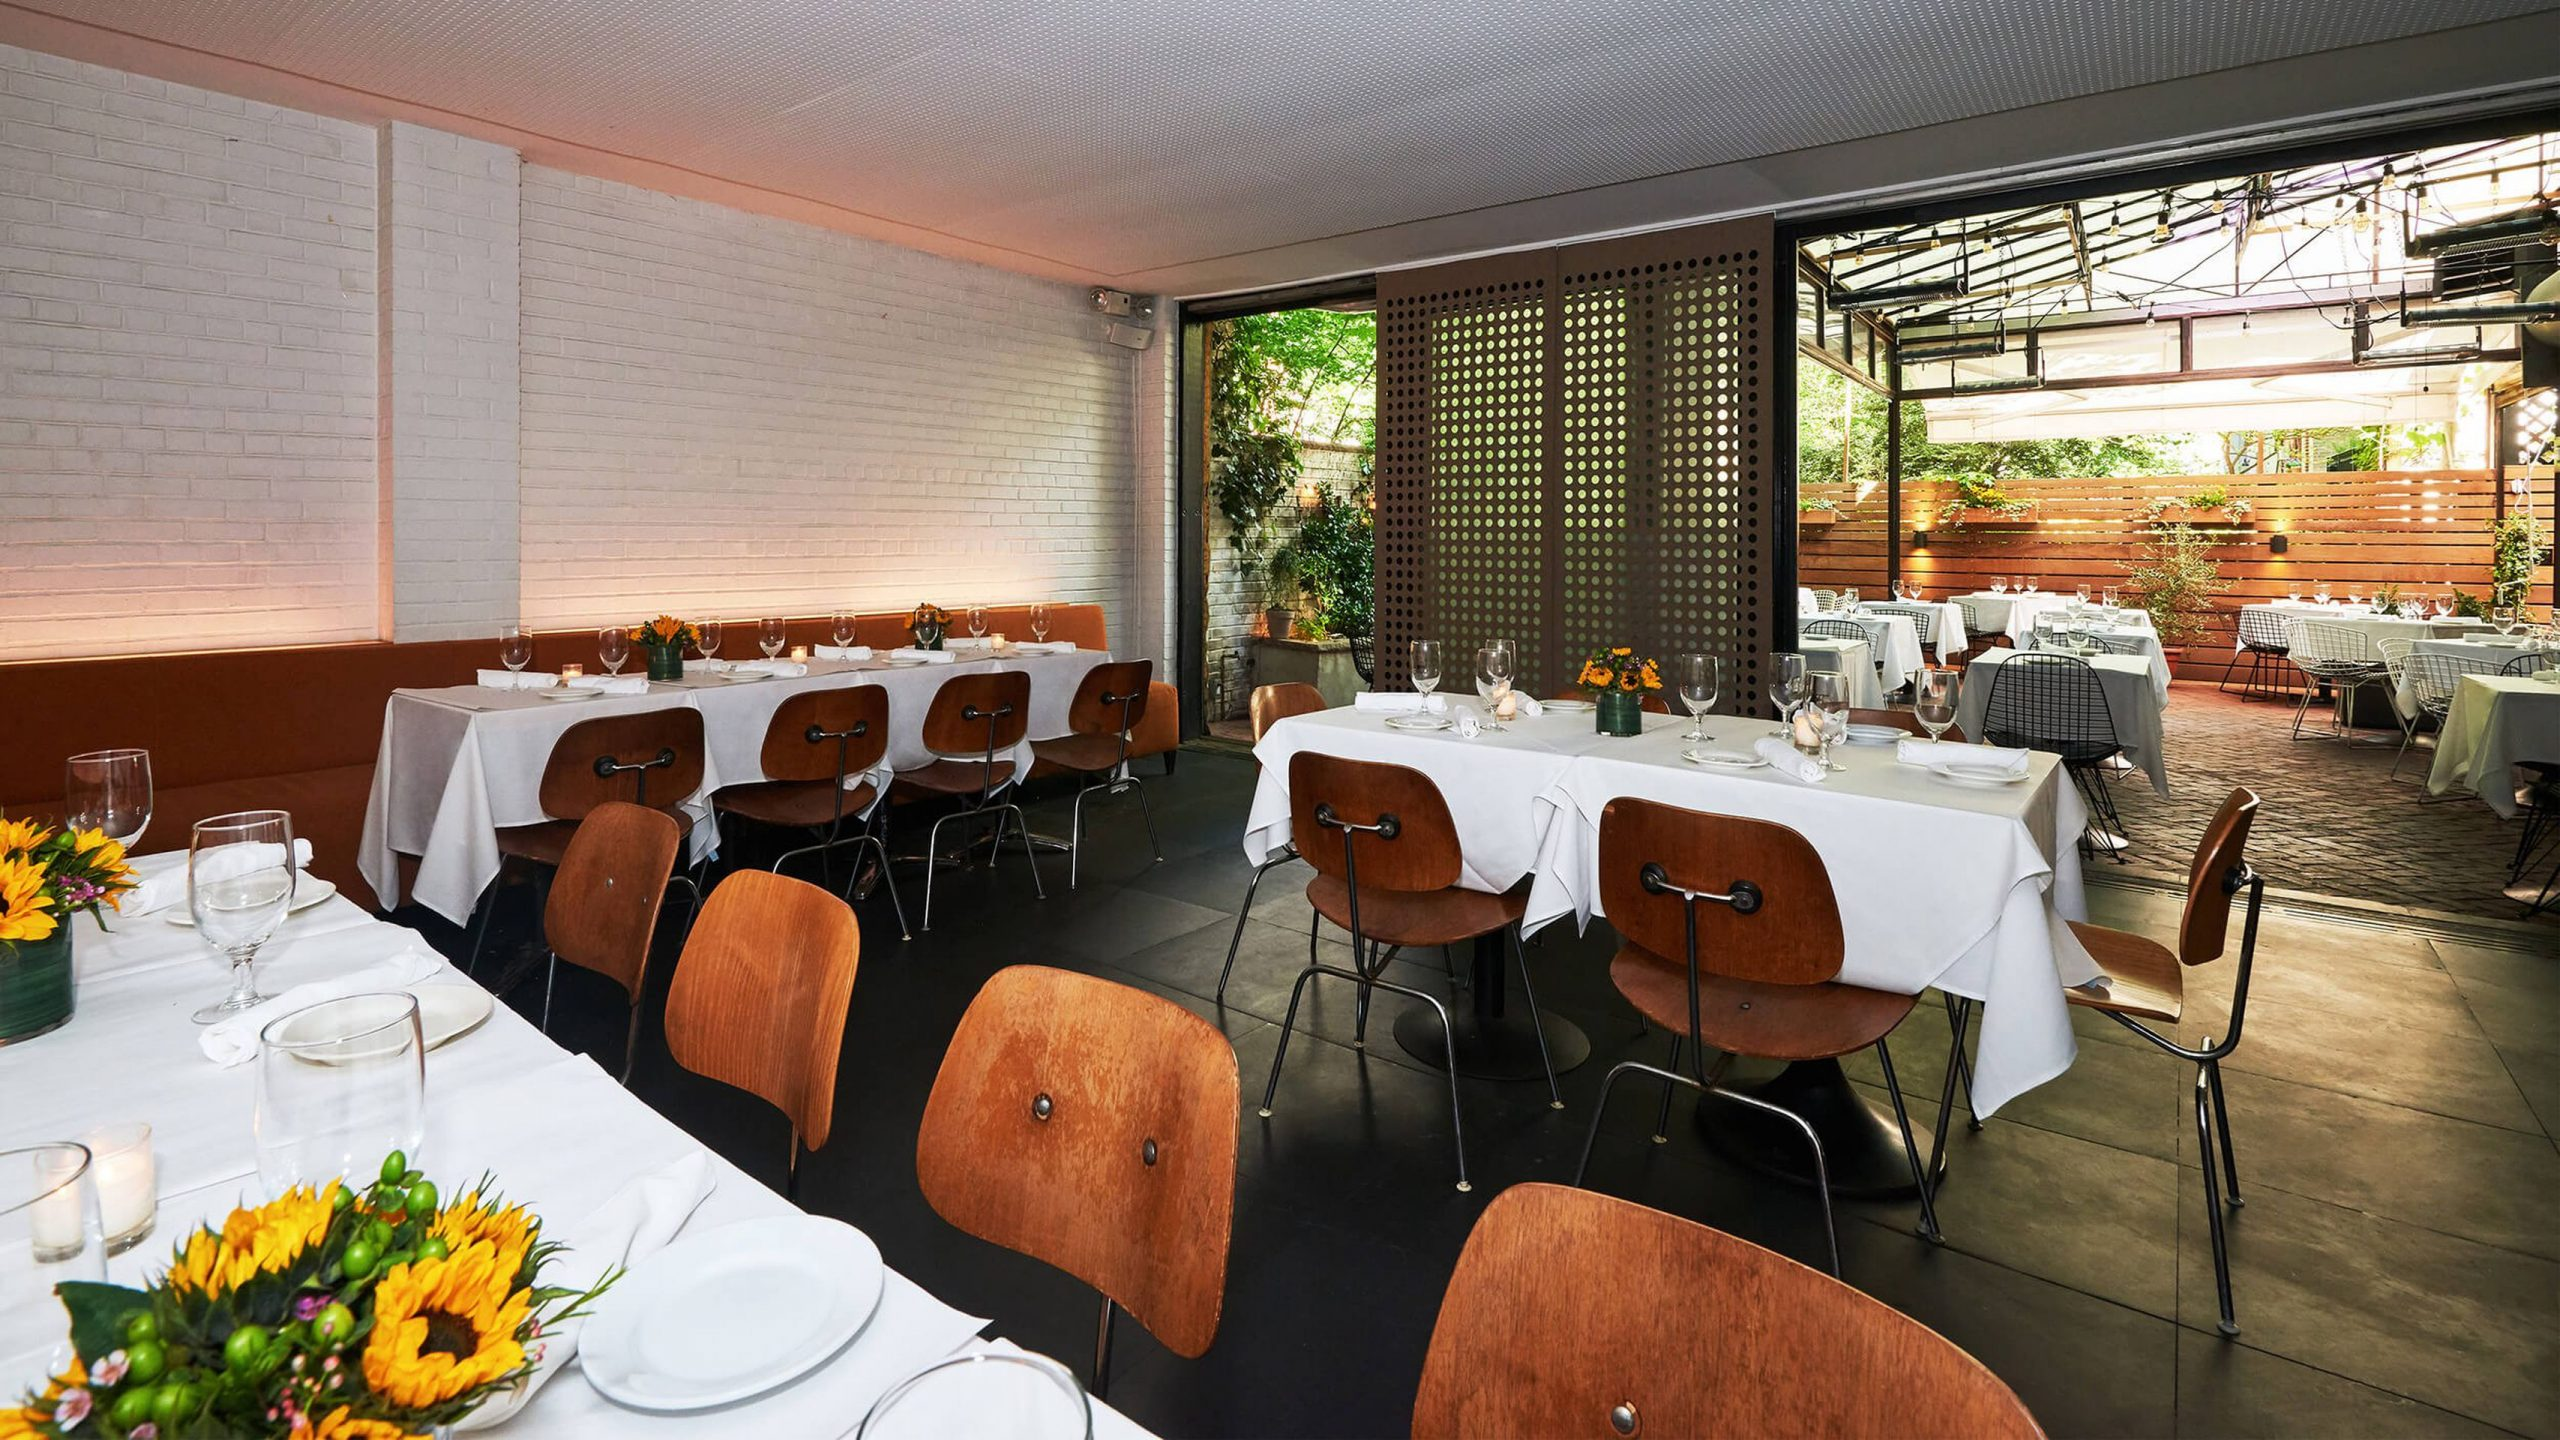 Covered outdoor dining area with multiple white linen tables